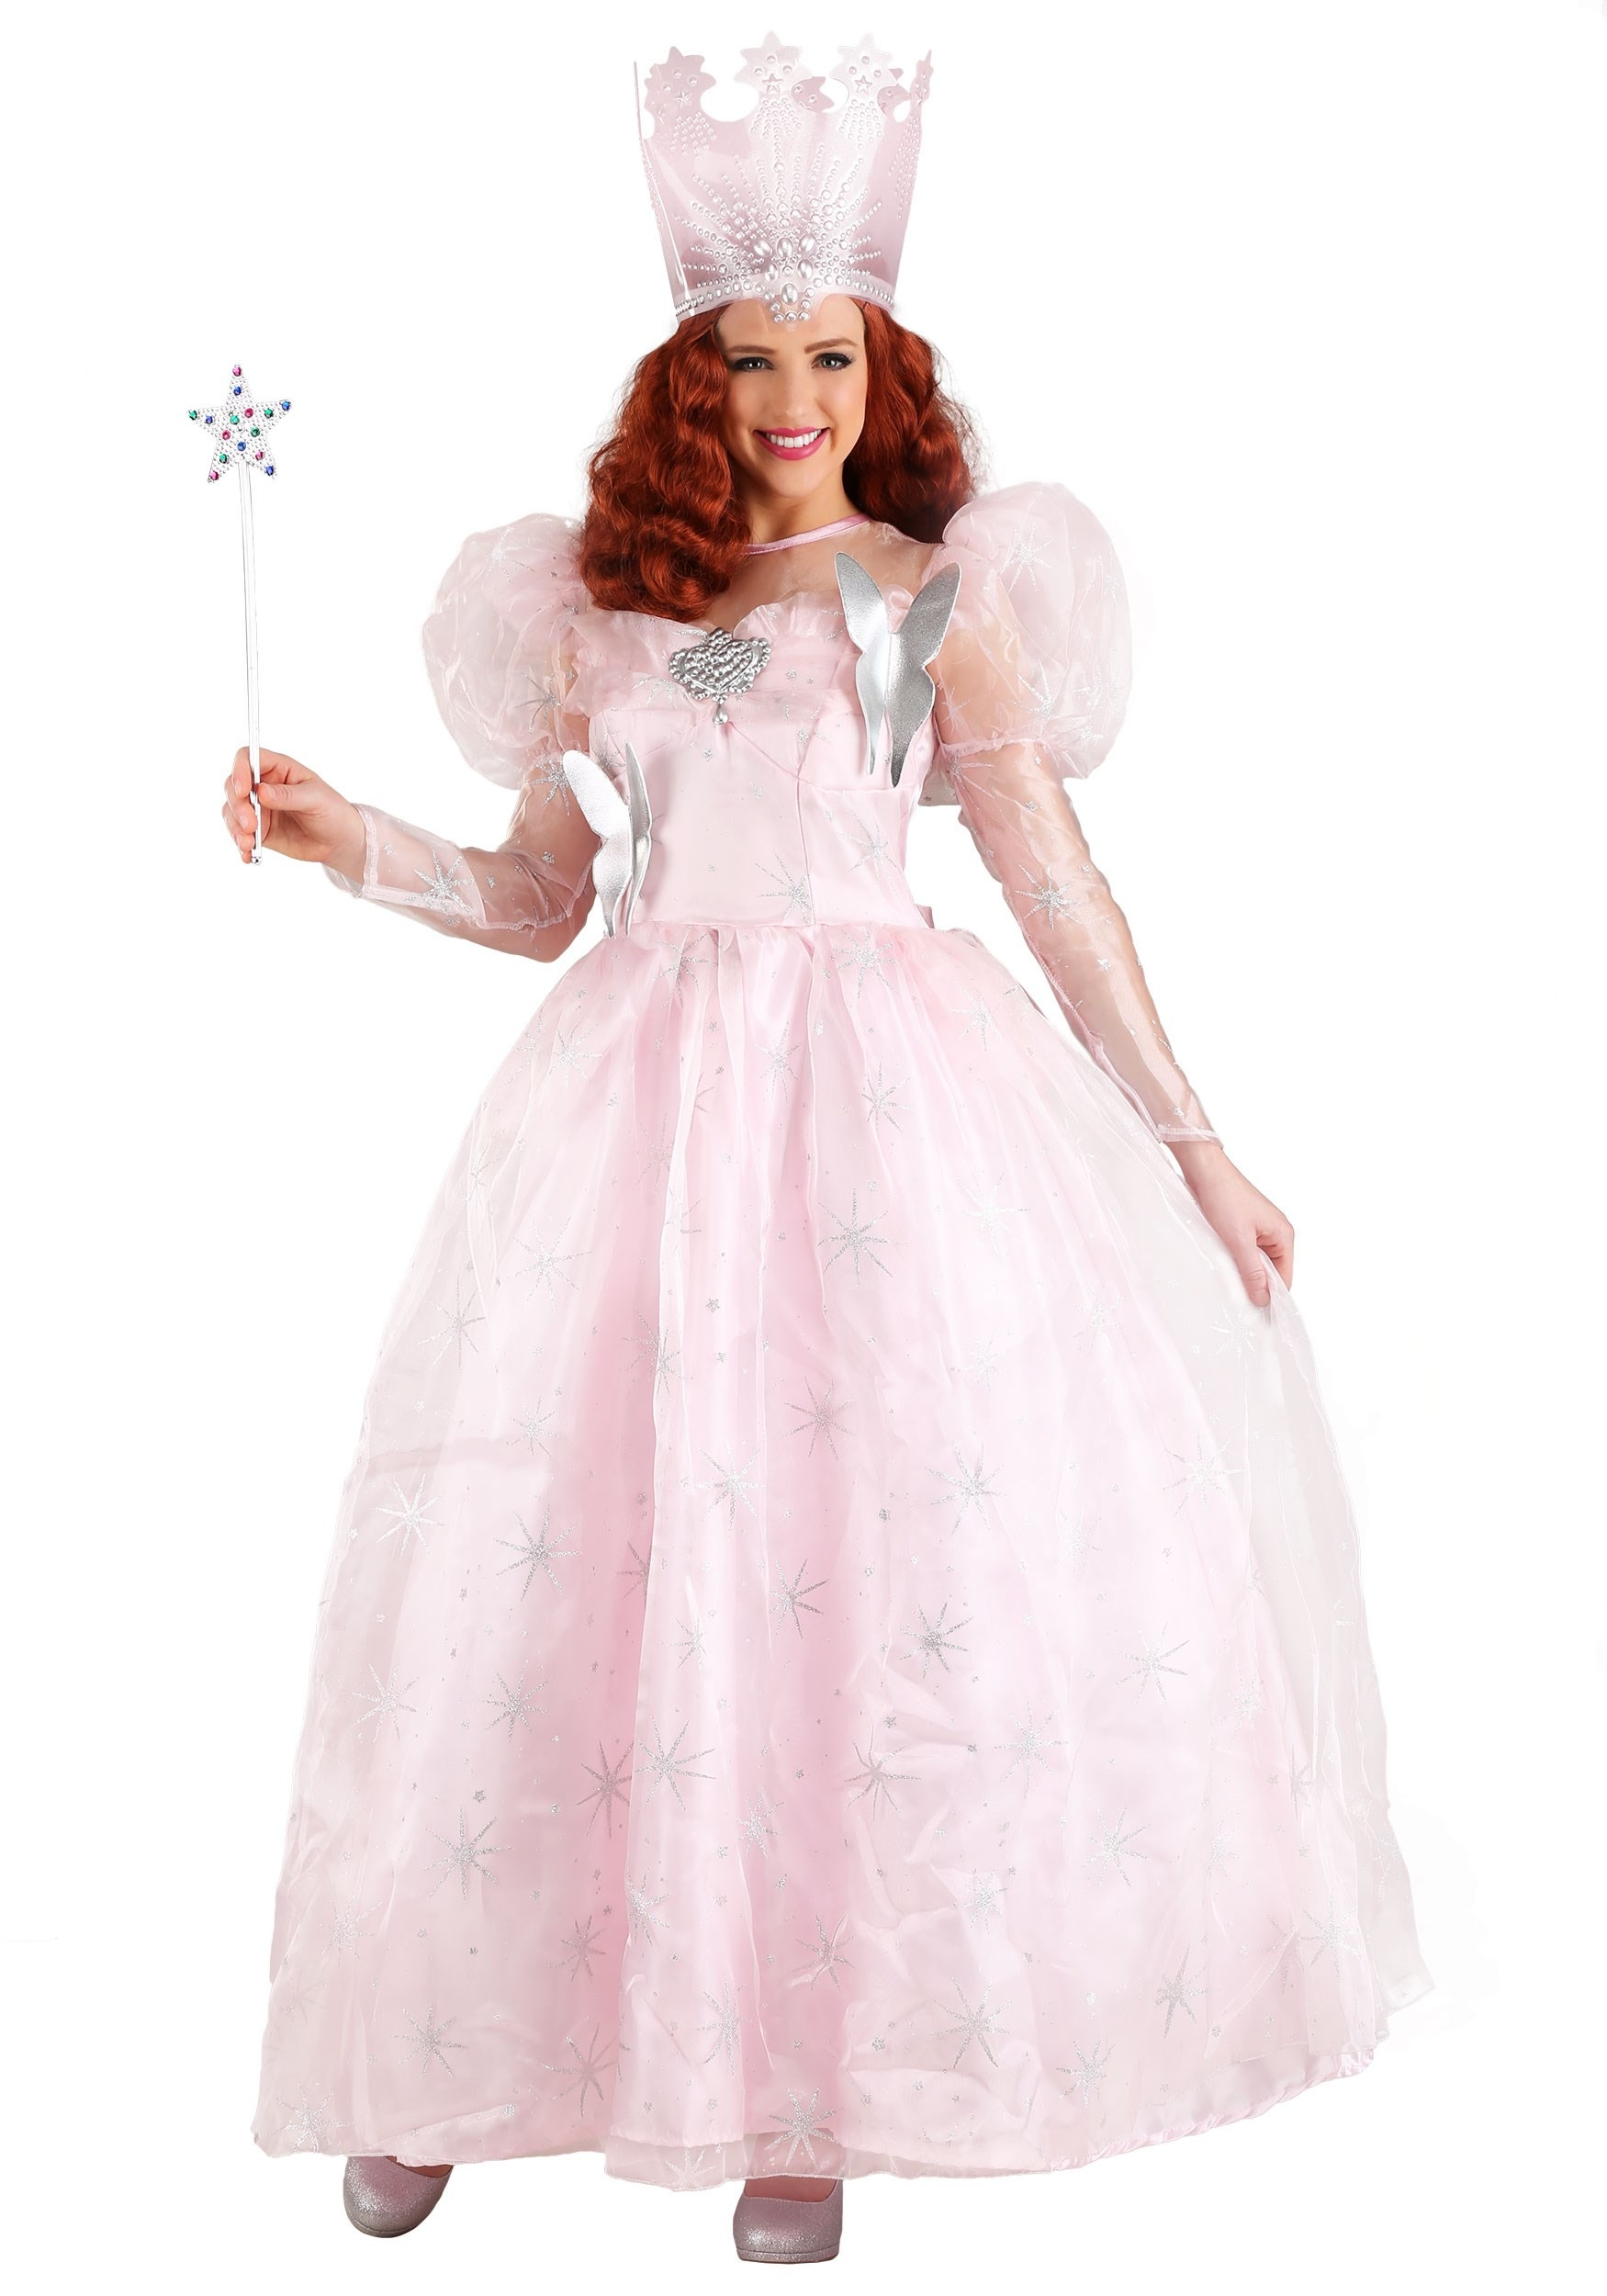 storybook & fairytale costumes - adult, kids fairy tale character